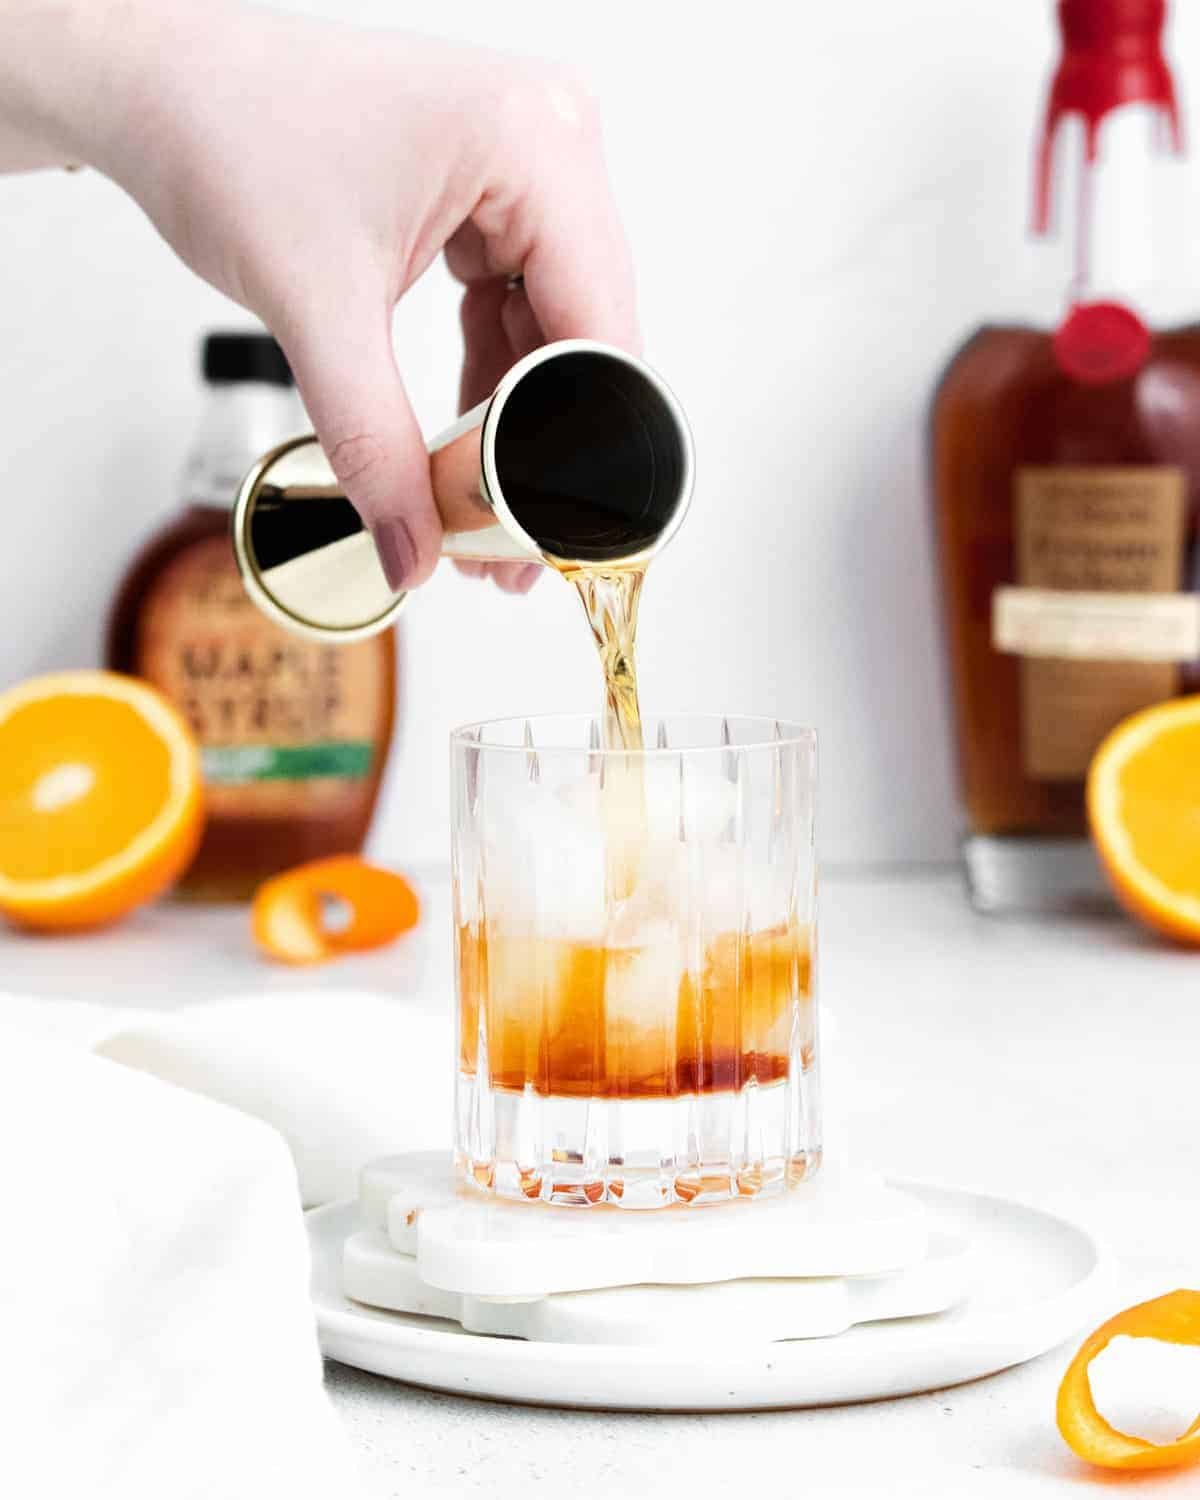 Alcohol being poured over ice in an old fashioned glass.